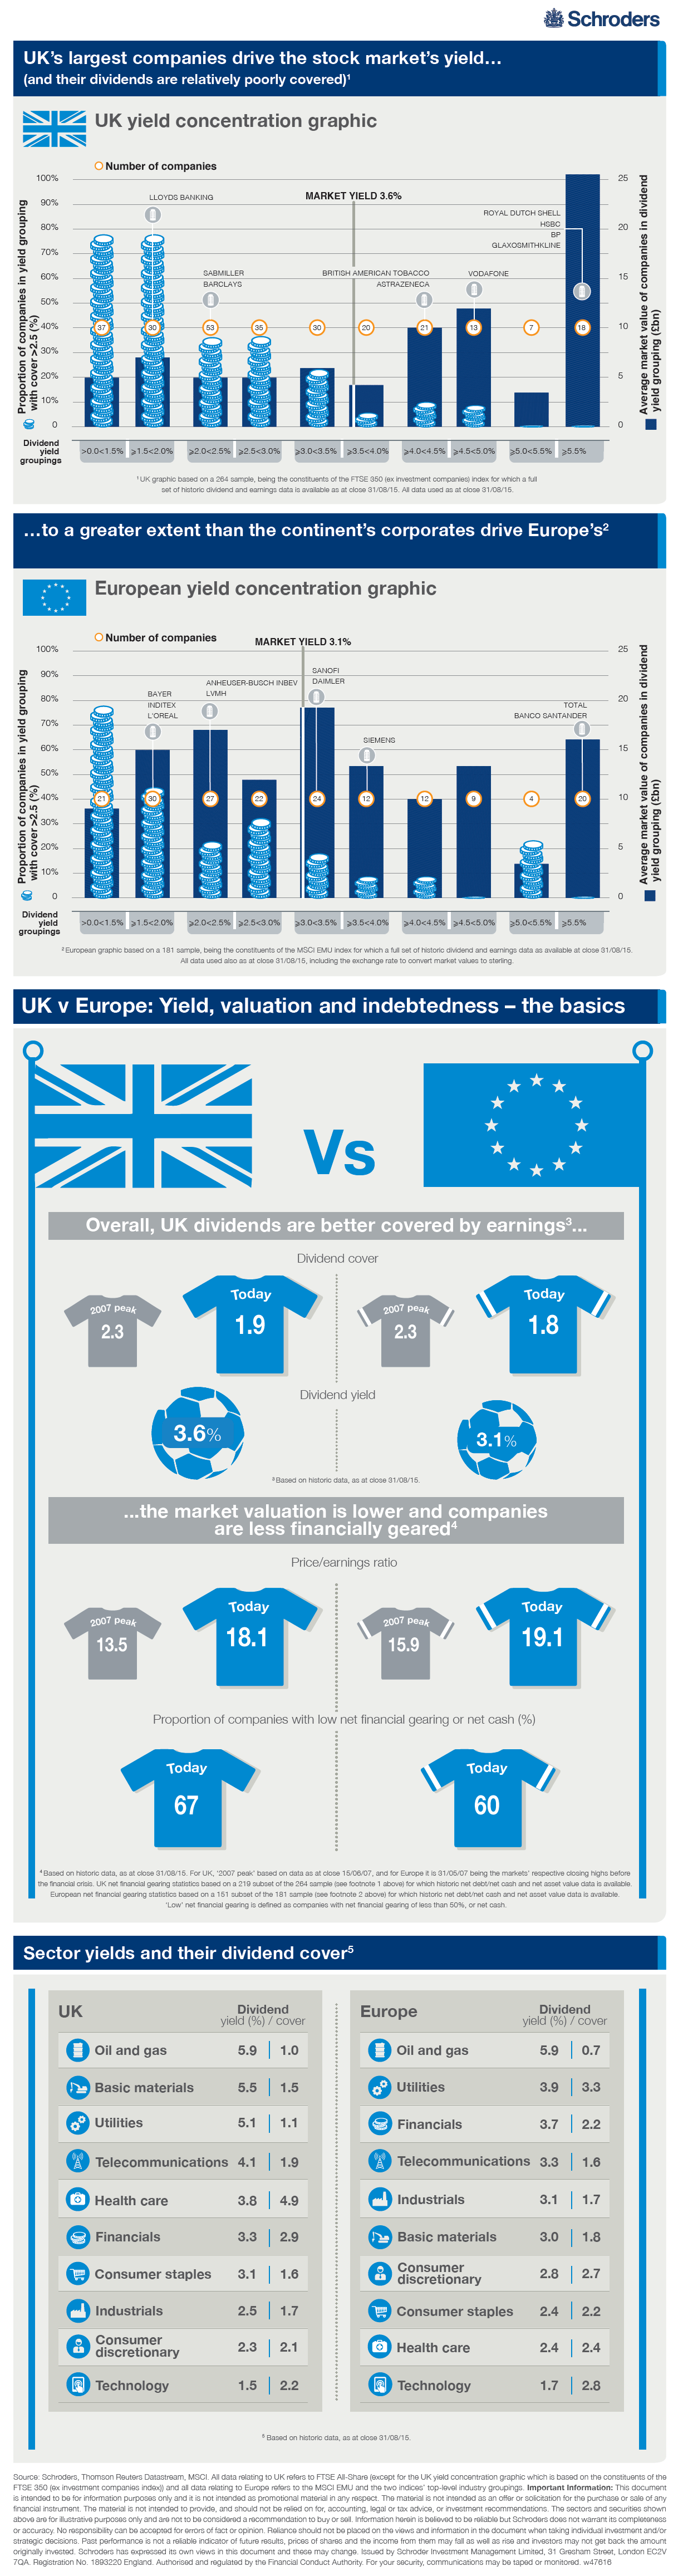 UK vs Europe Dividend Yield and Concentration Chart